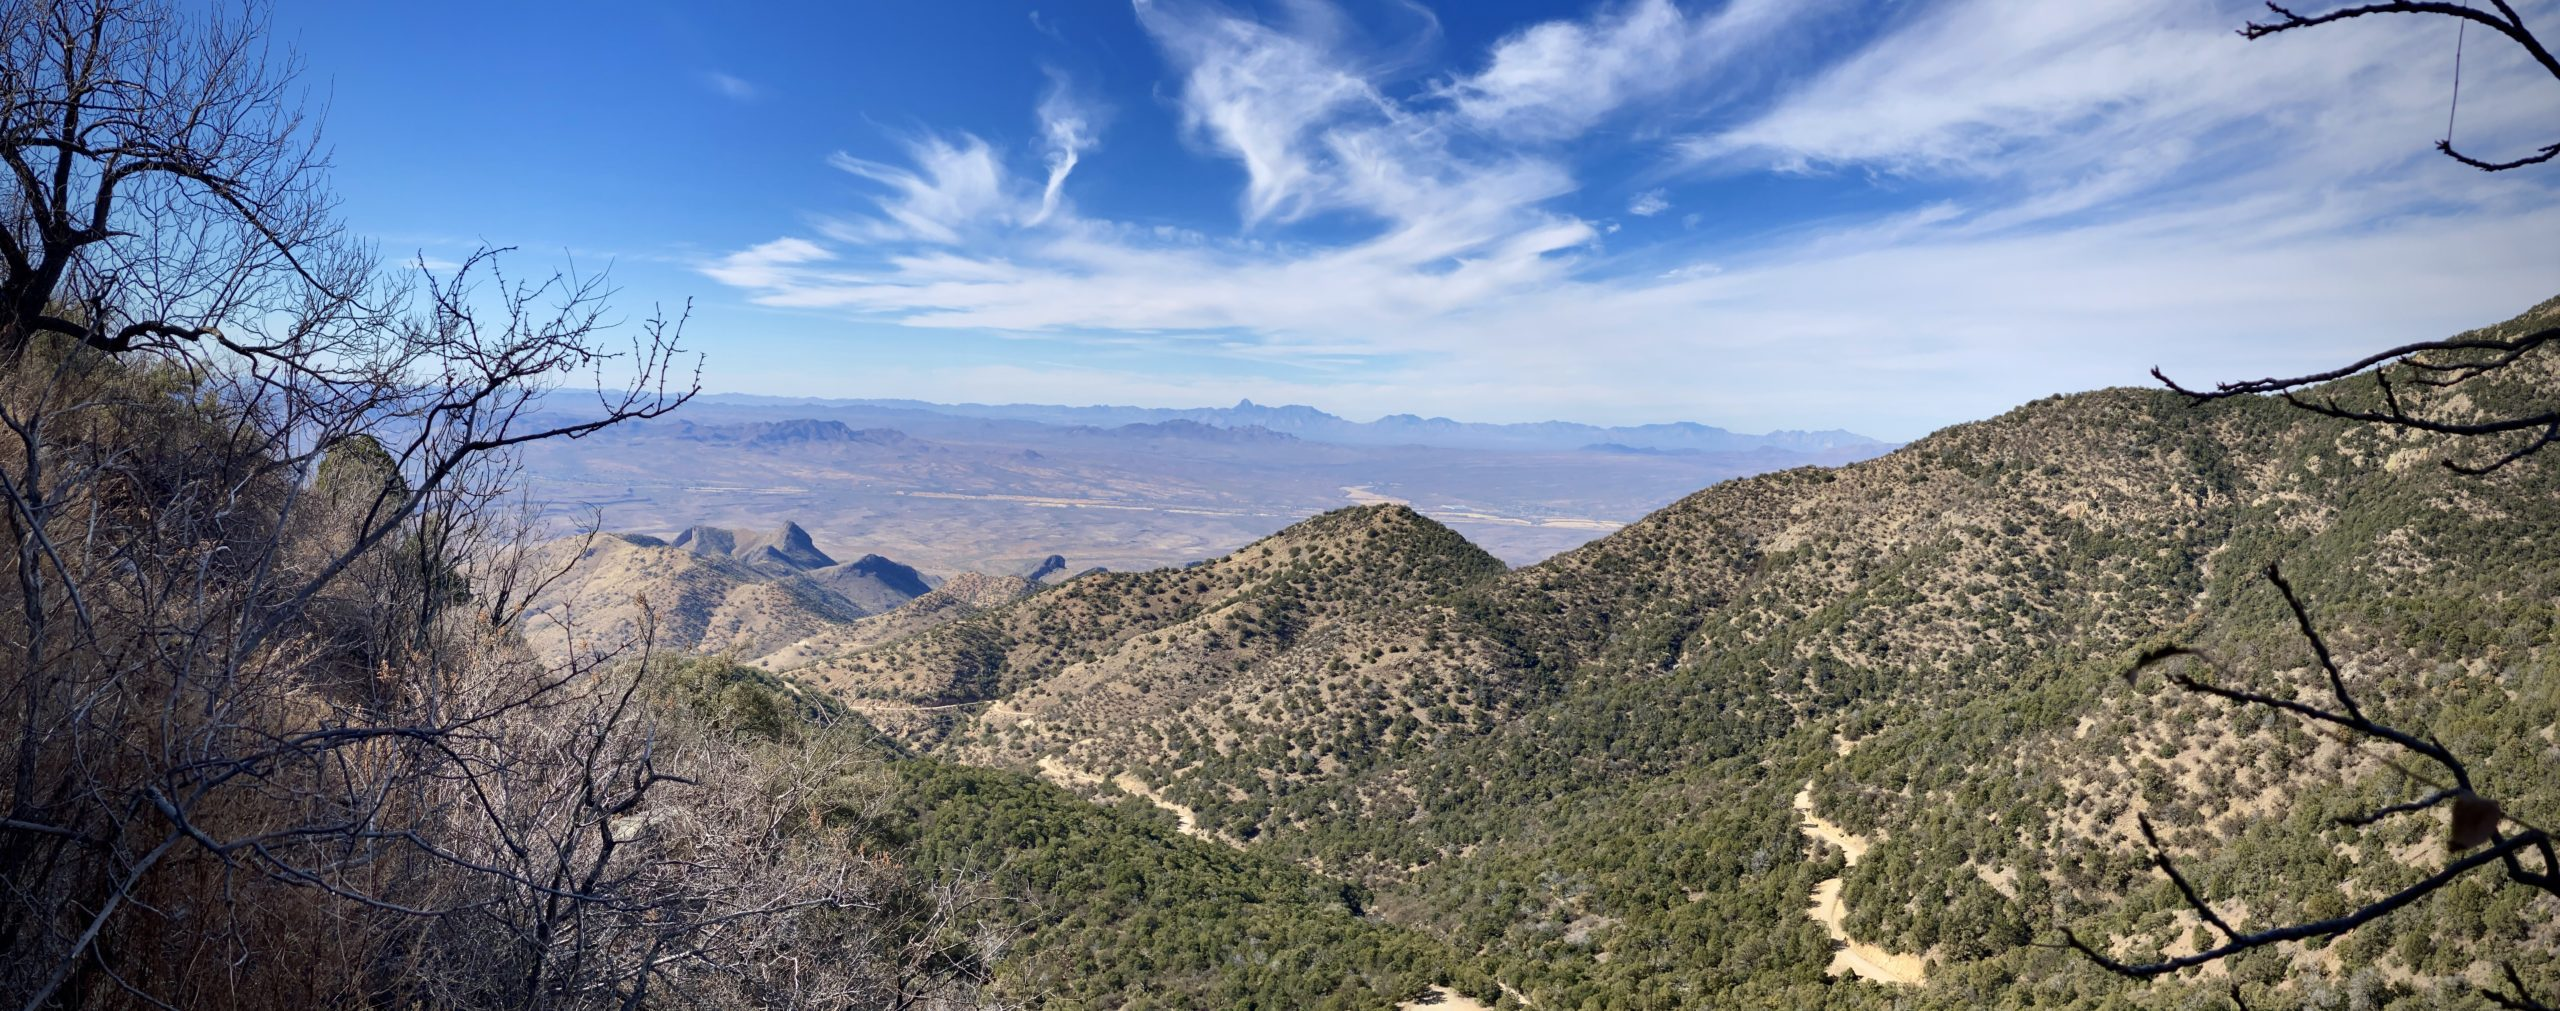 A panorama view of the dirt portion of Mt Hopkins road near Green Valley, AZ.